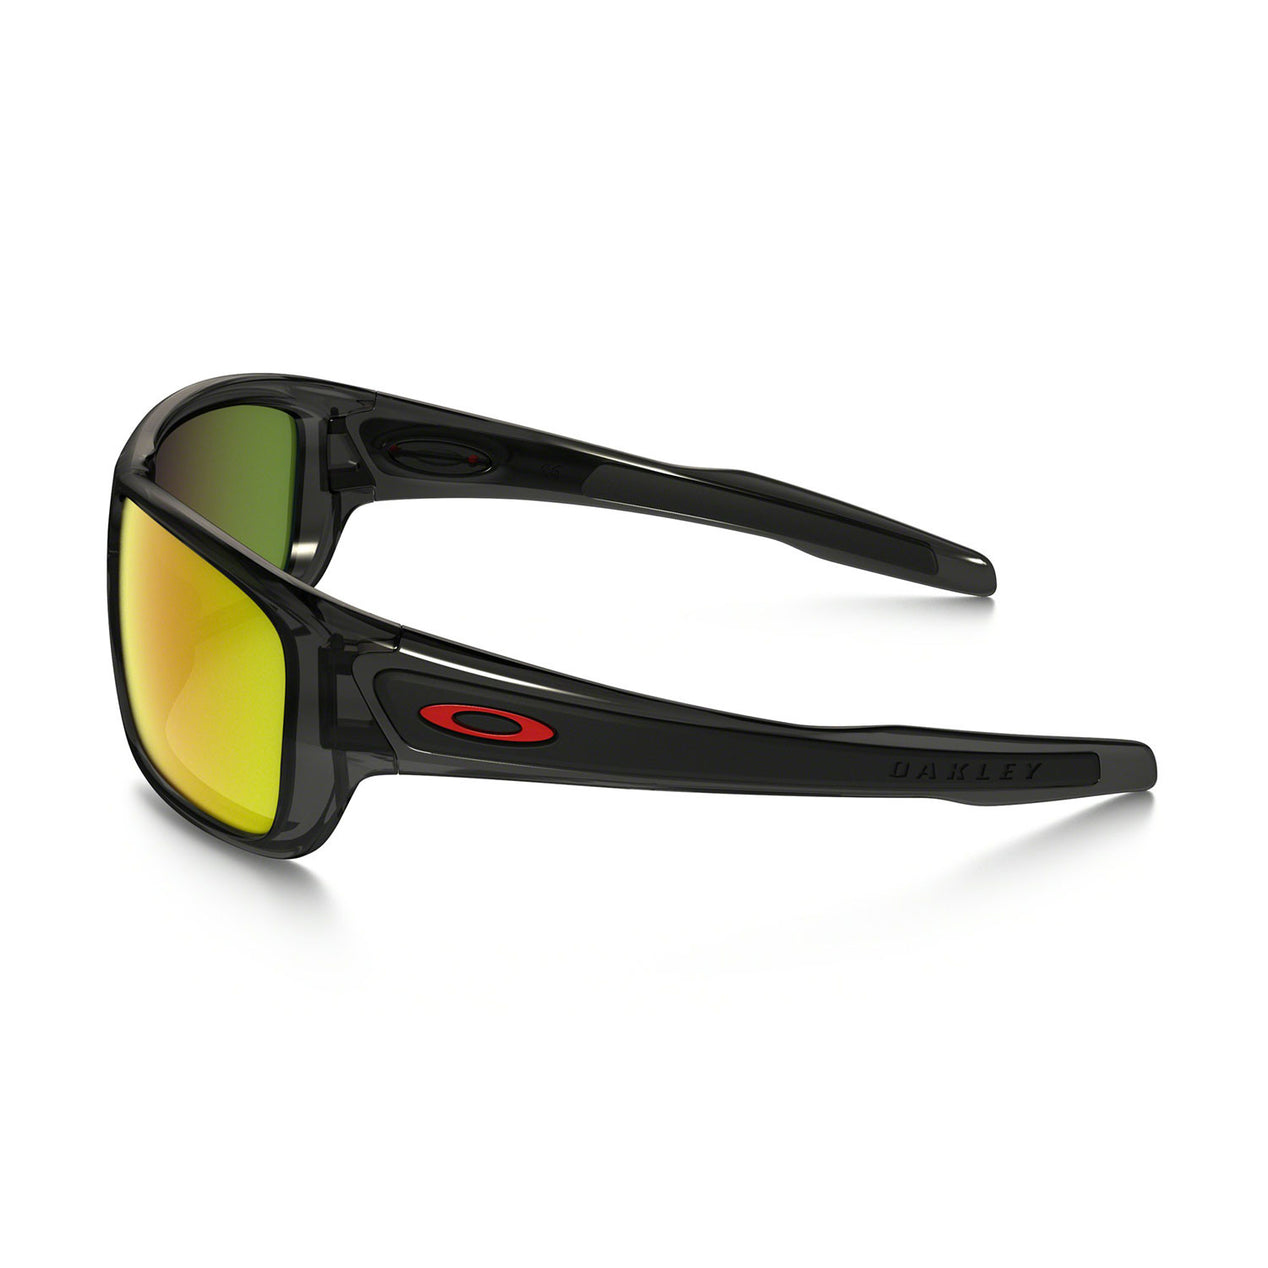 075ed536b1 ... Turbine XS (Youth Fit) - Grey Smoke - Ruby Iridium Lens Sunglasses thumb